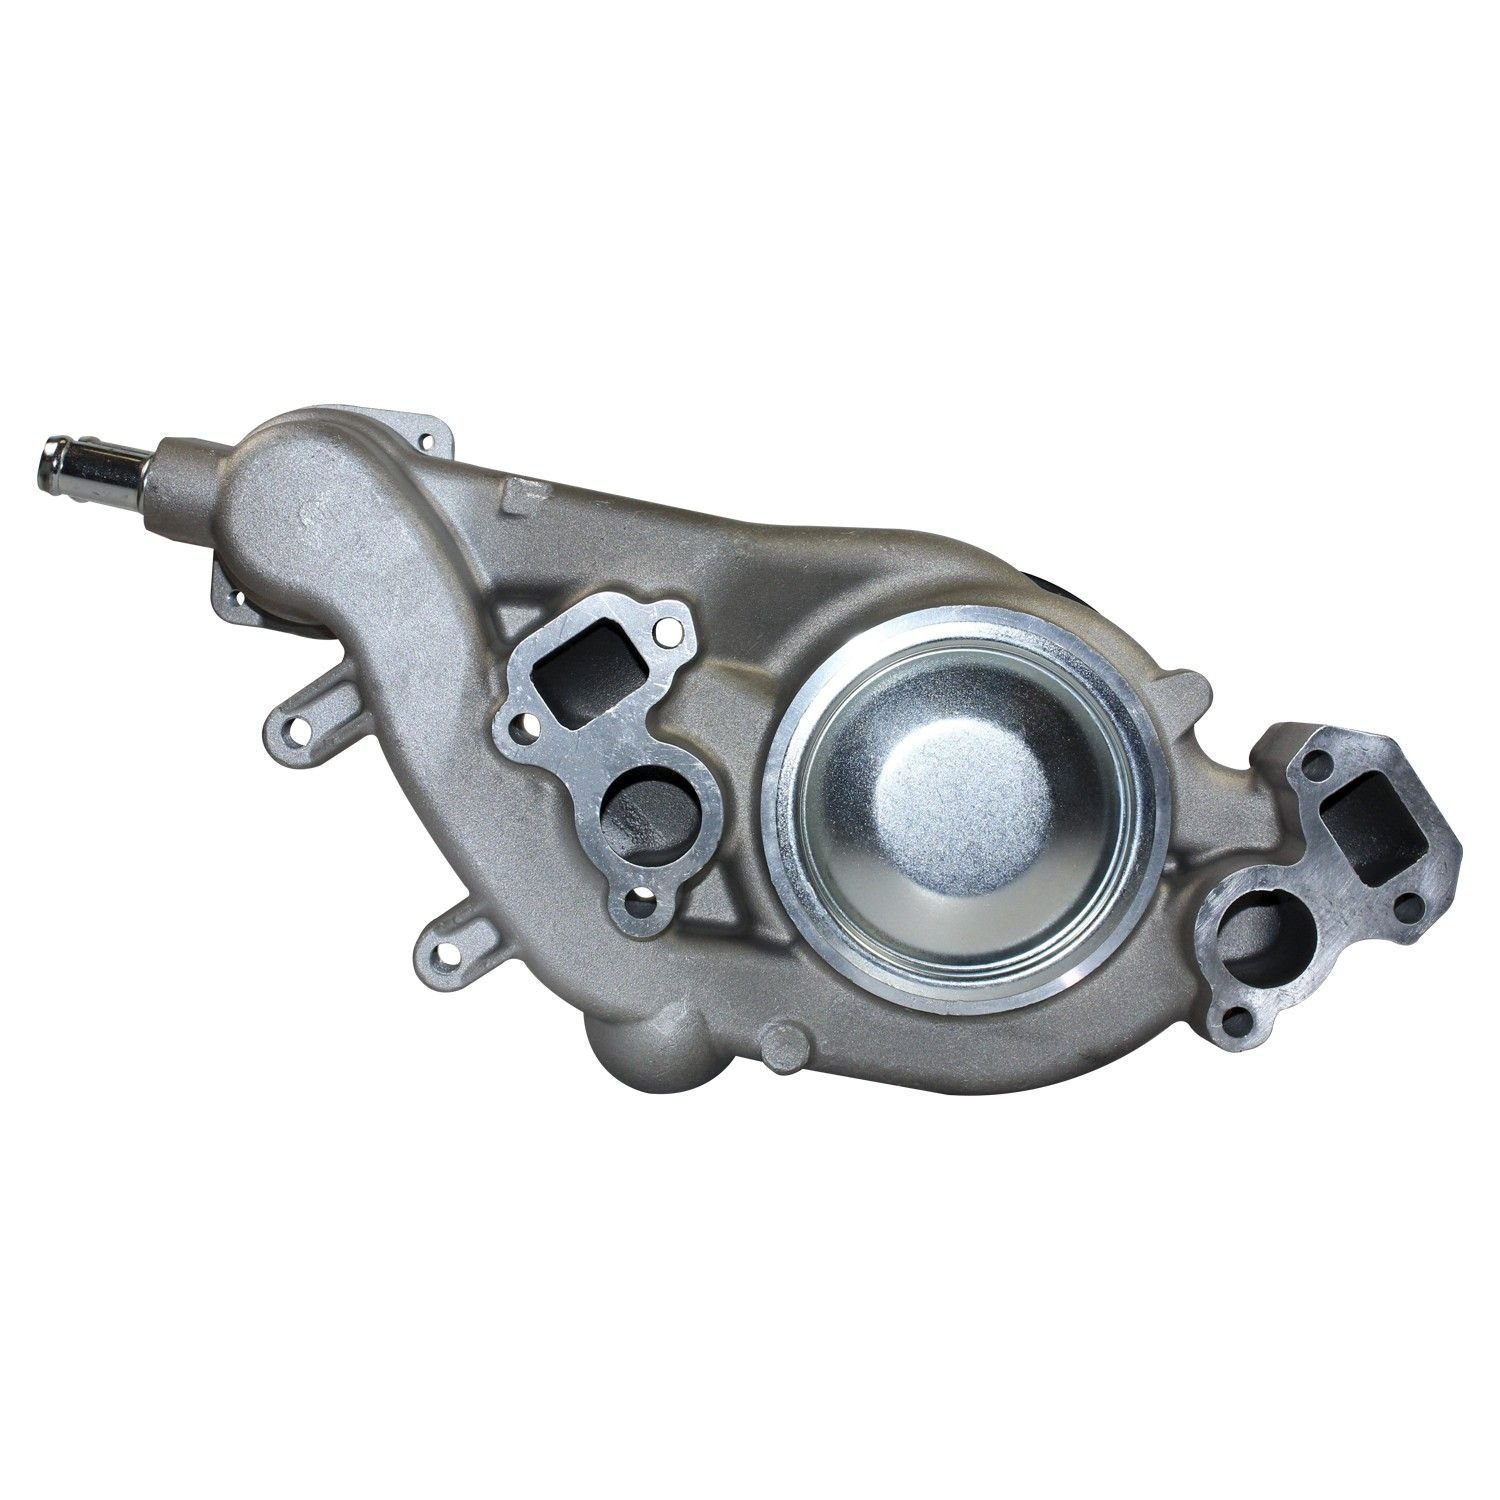 2006 Cadillac Cts Water Pump